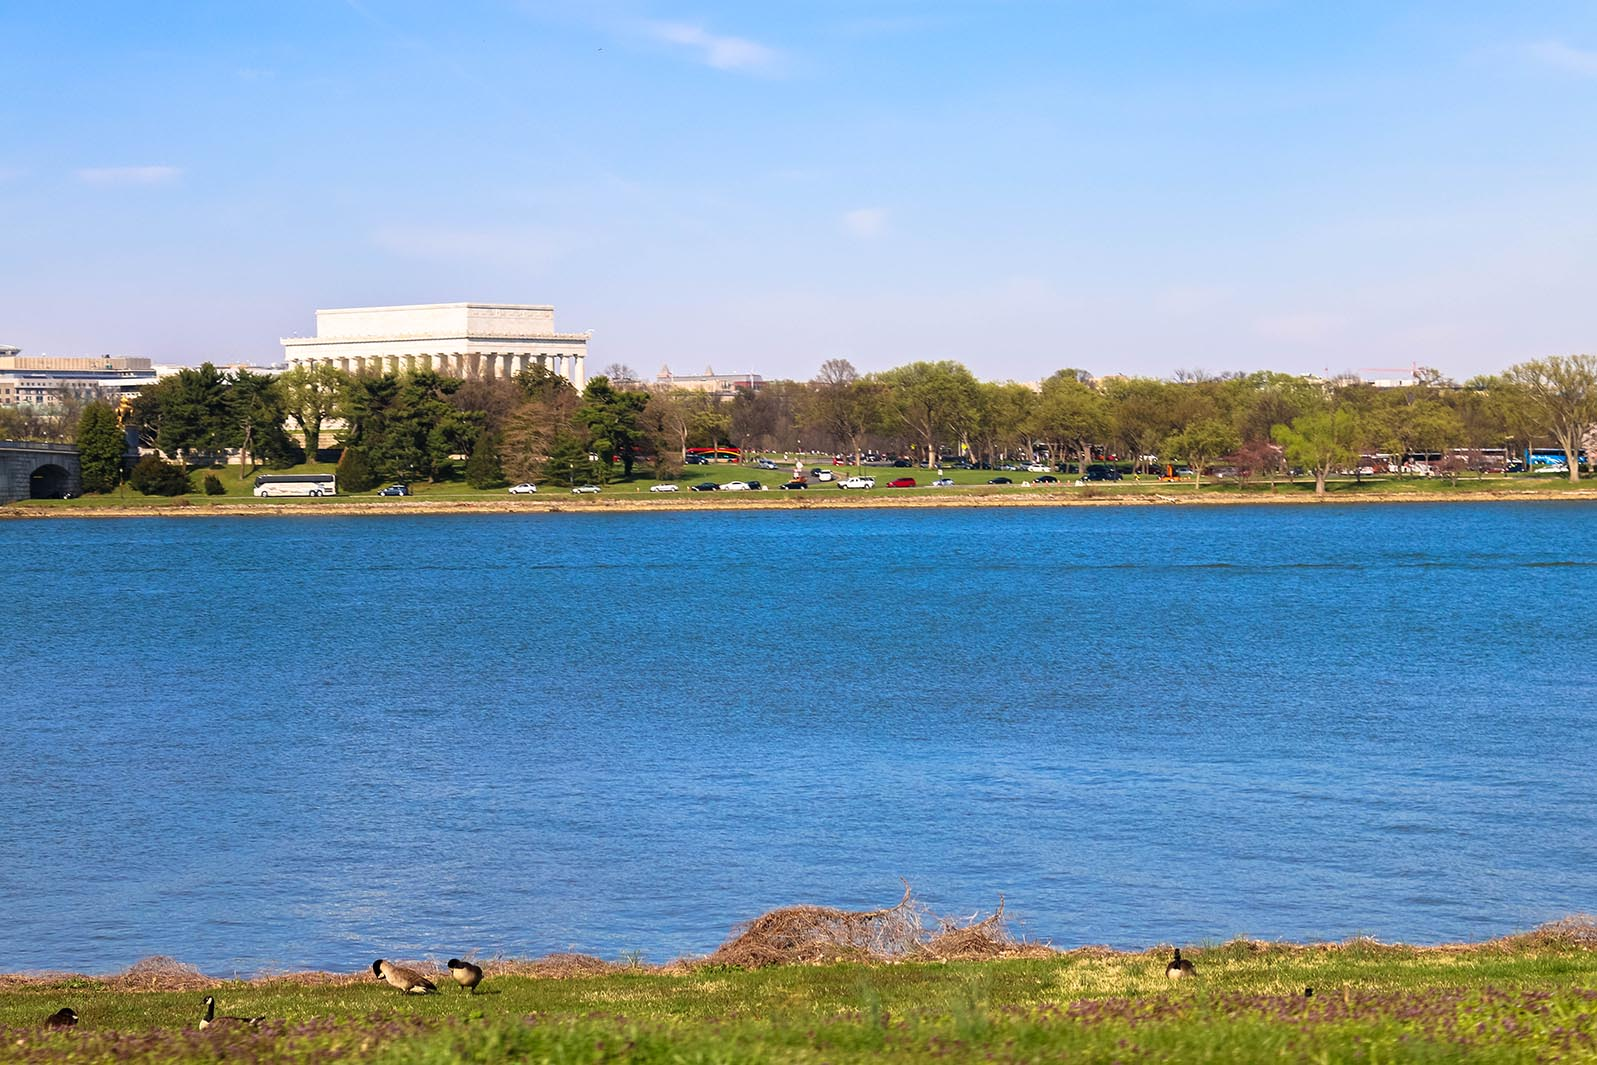 Lincoln memorial across potomac river in Washington, D.C.